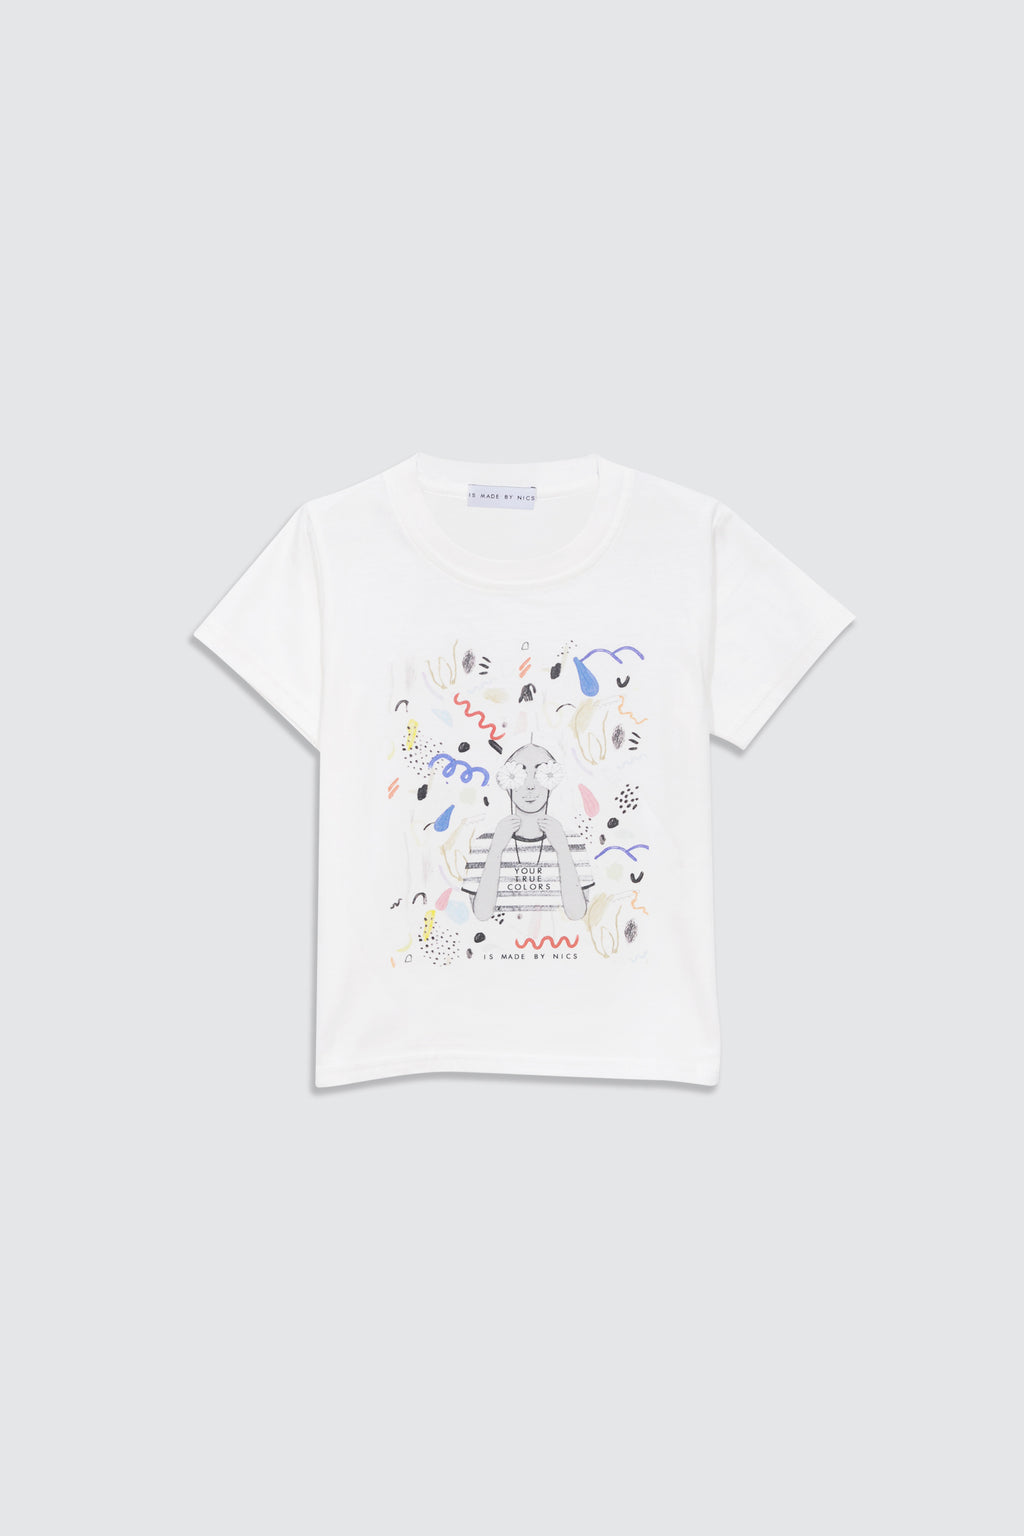 [Made By Nics] MBN-Trucolor T-Shirt [9M-9Y]